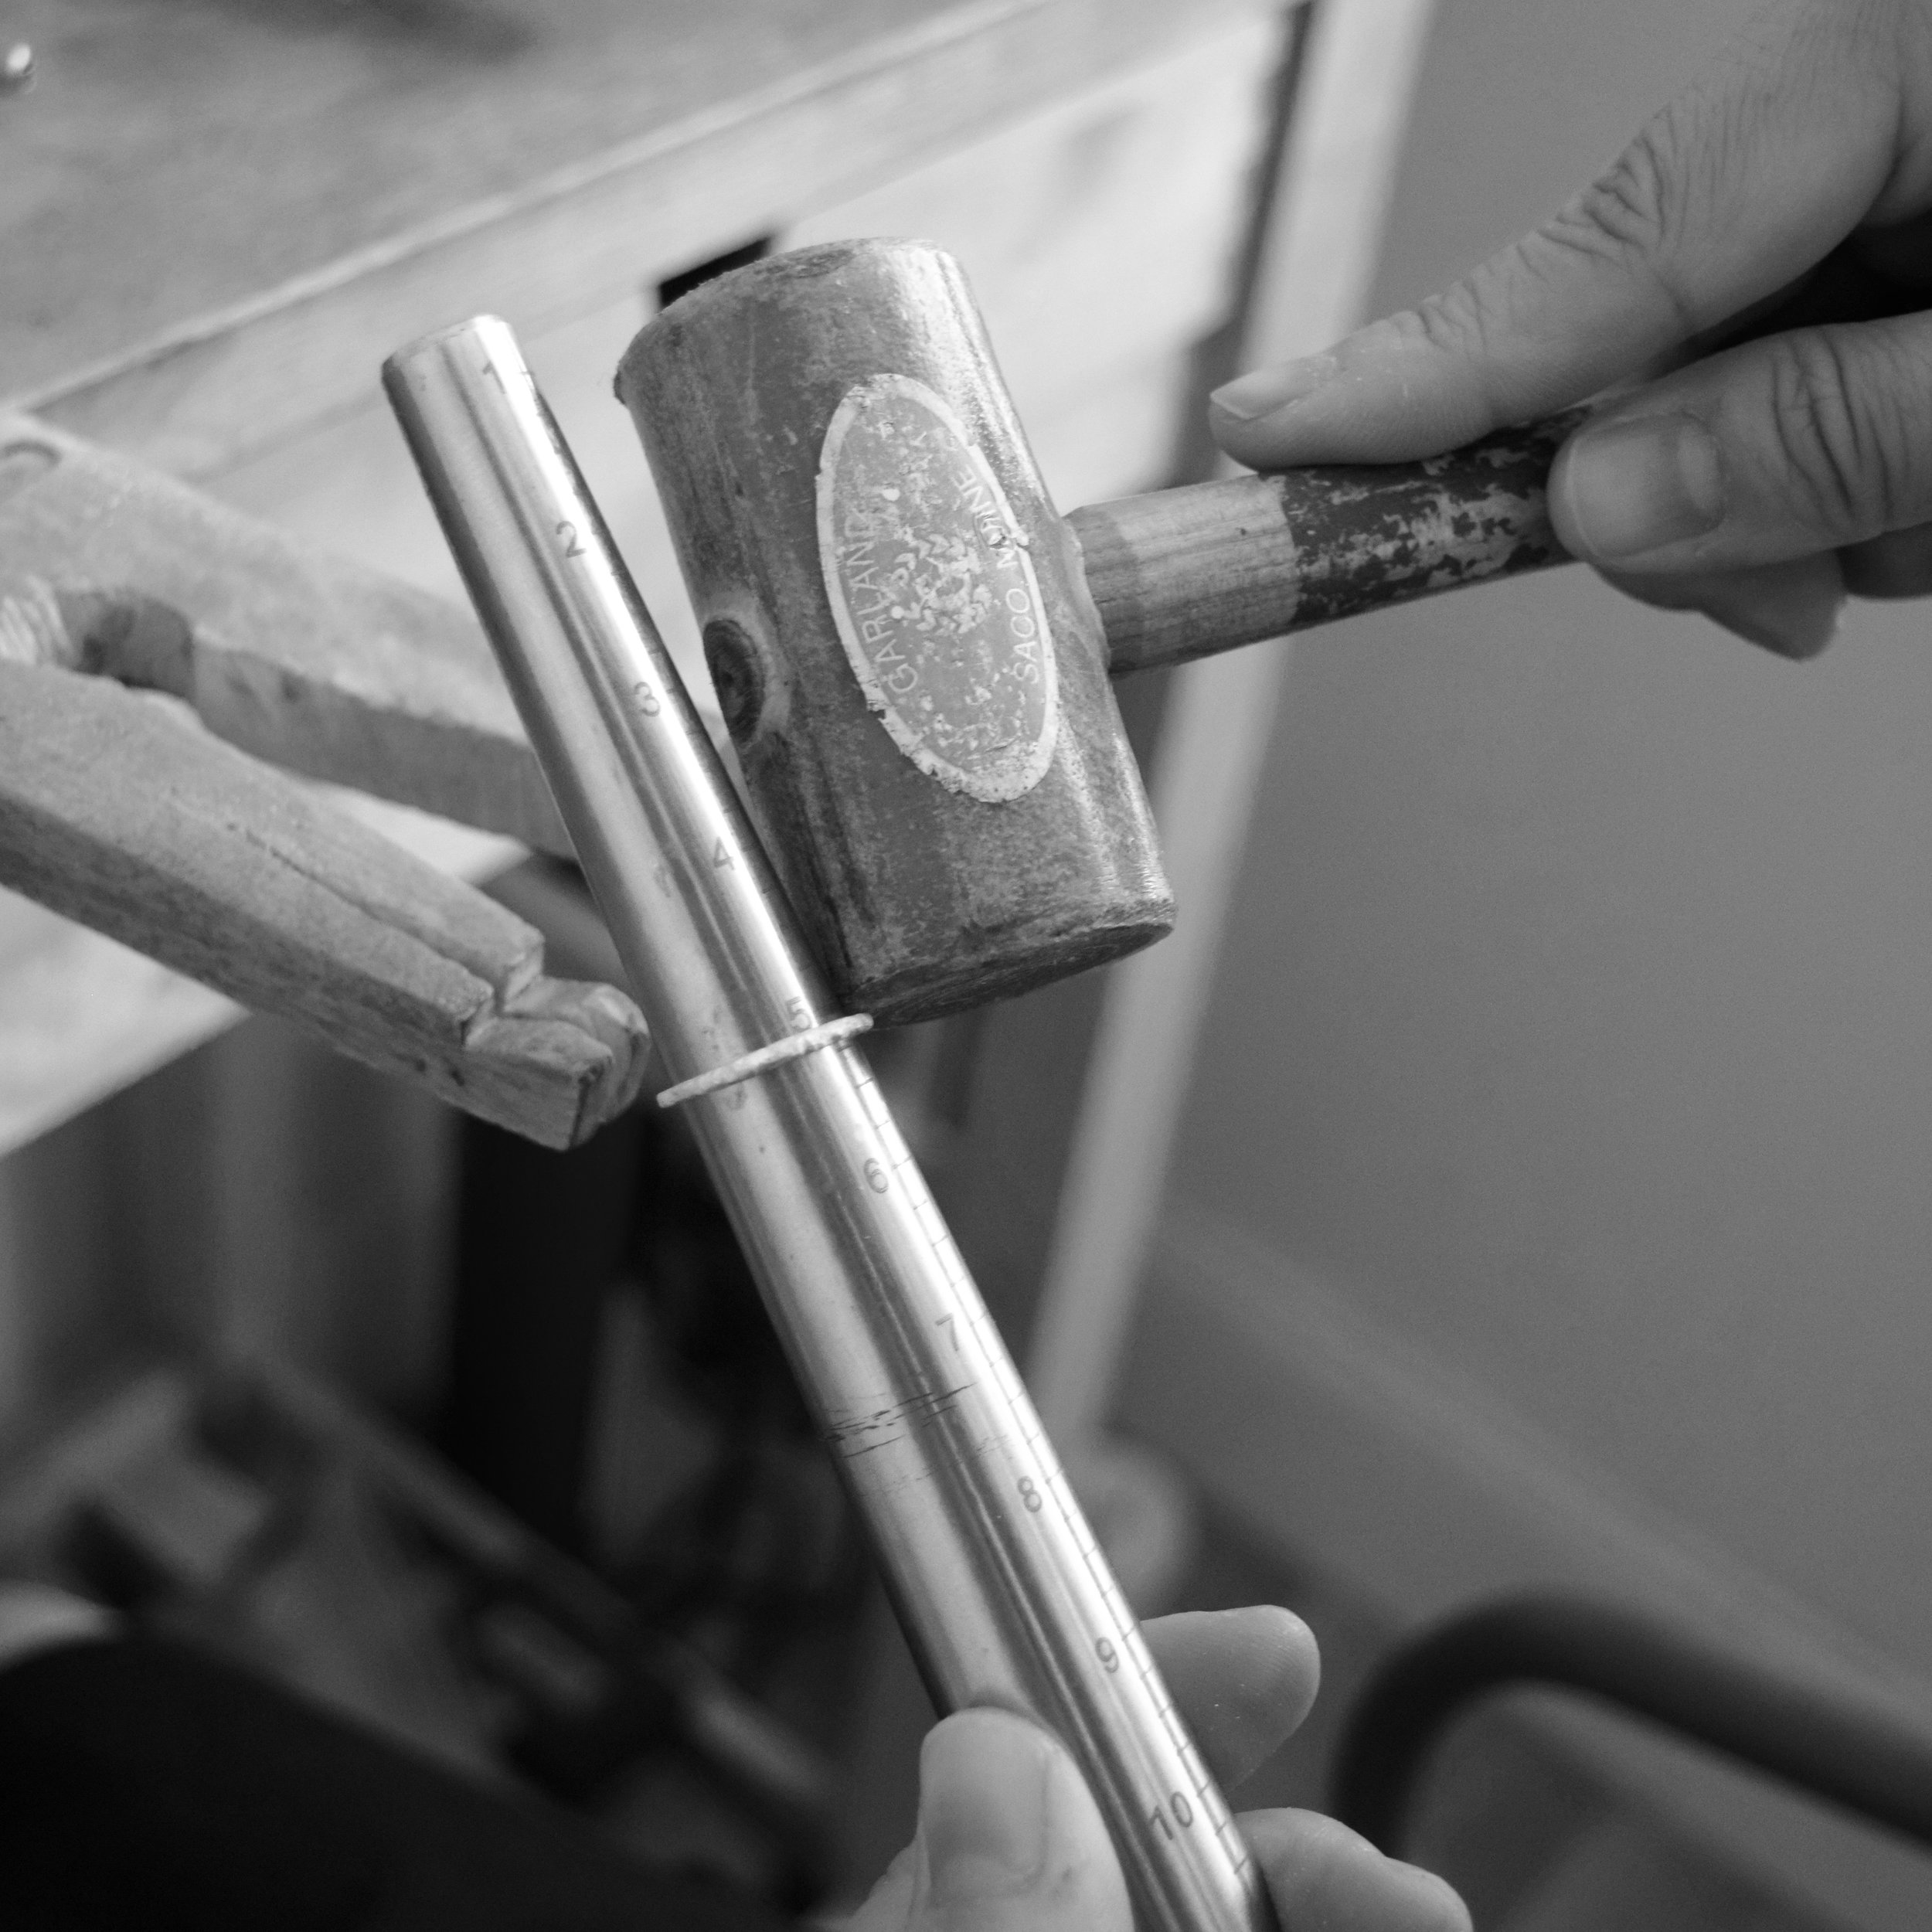 3. Since a ring typically shrinks during casting, we gently hammer it down a mandrel with a raw hide mallet to enlarge it.